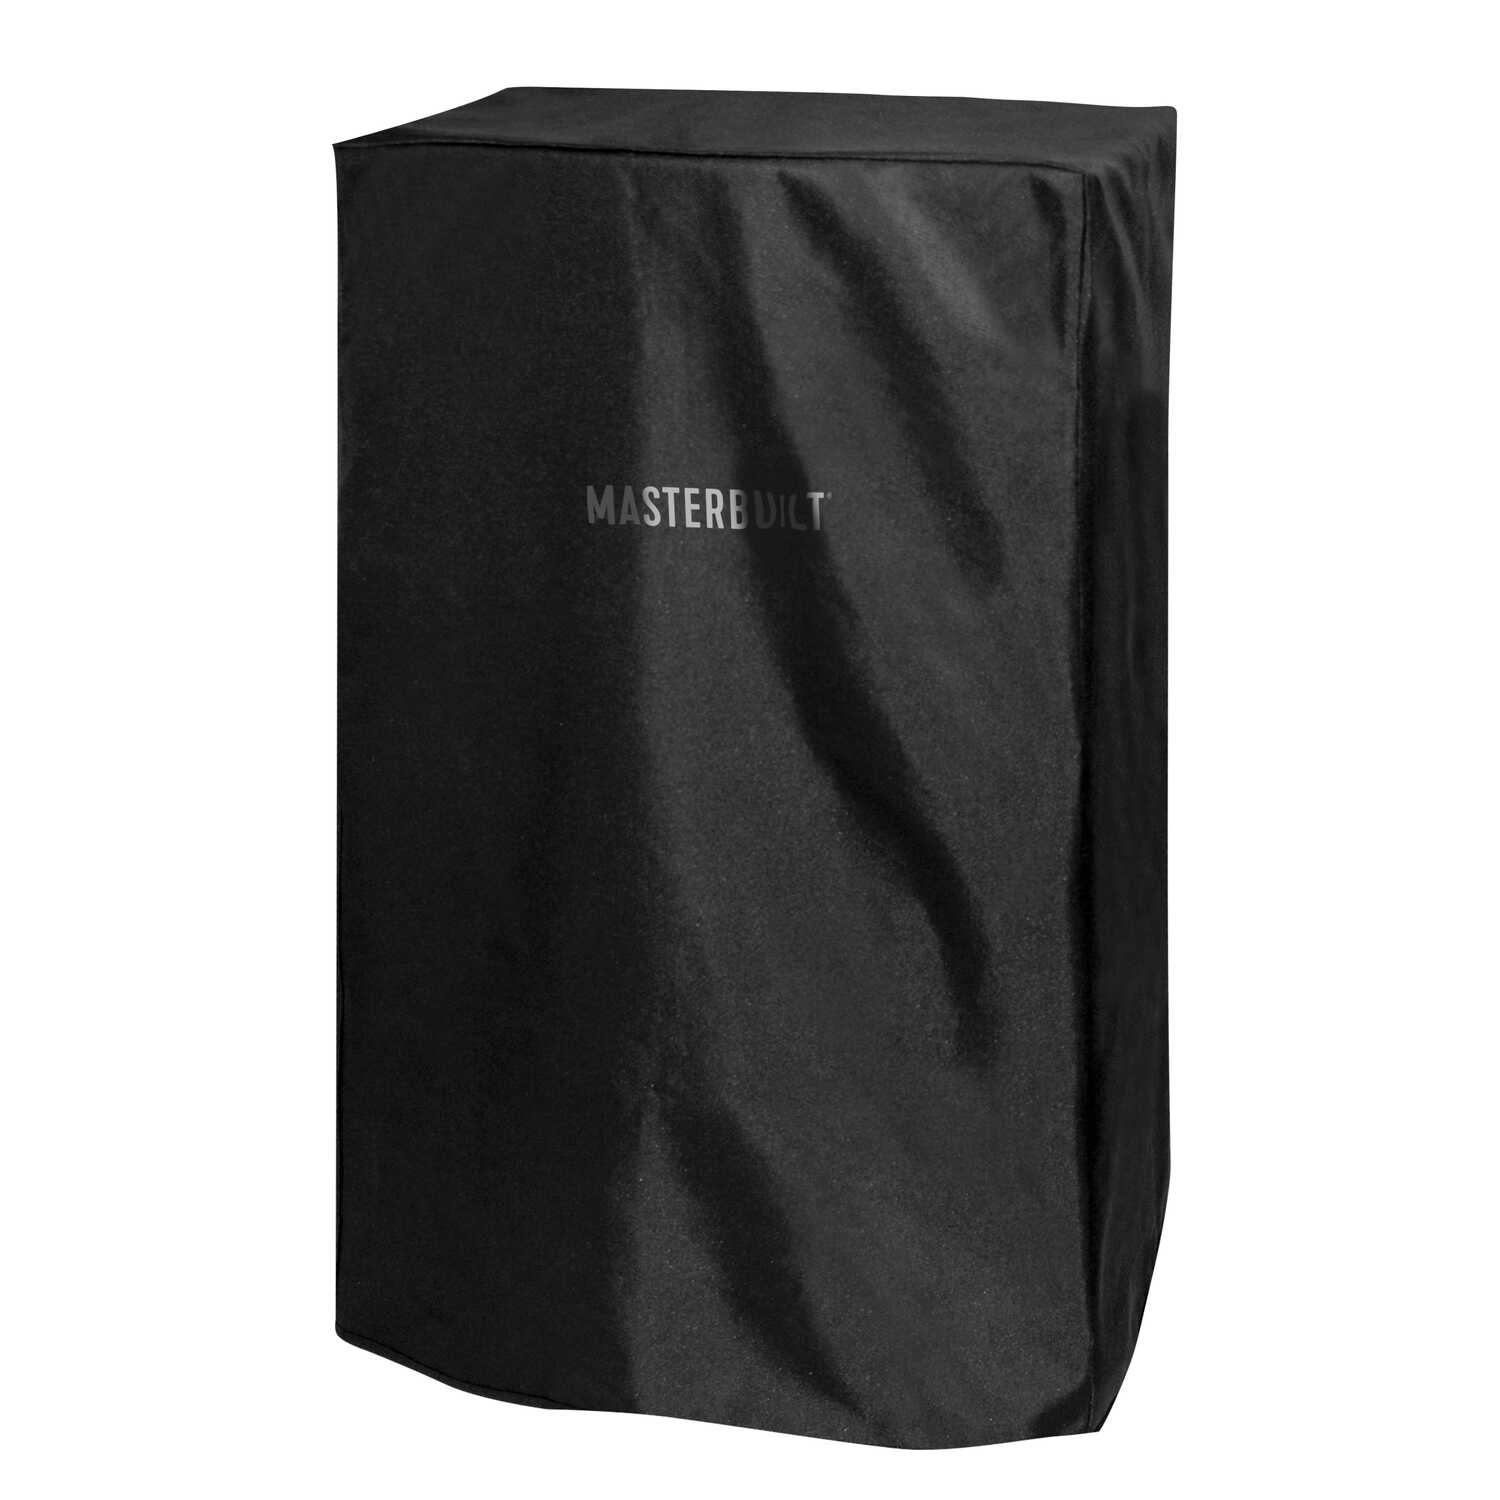 Masterbuilt  Black  Smoker Cover  19.5 in. W x 16.9 in. D x 30.9 in. H For 30 in. Electric Digital S